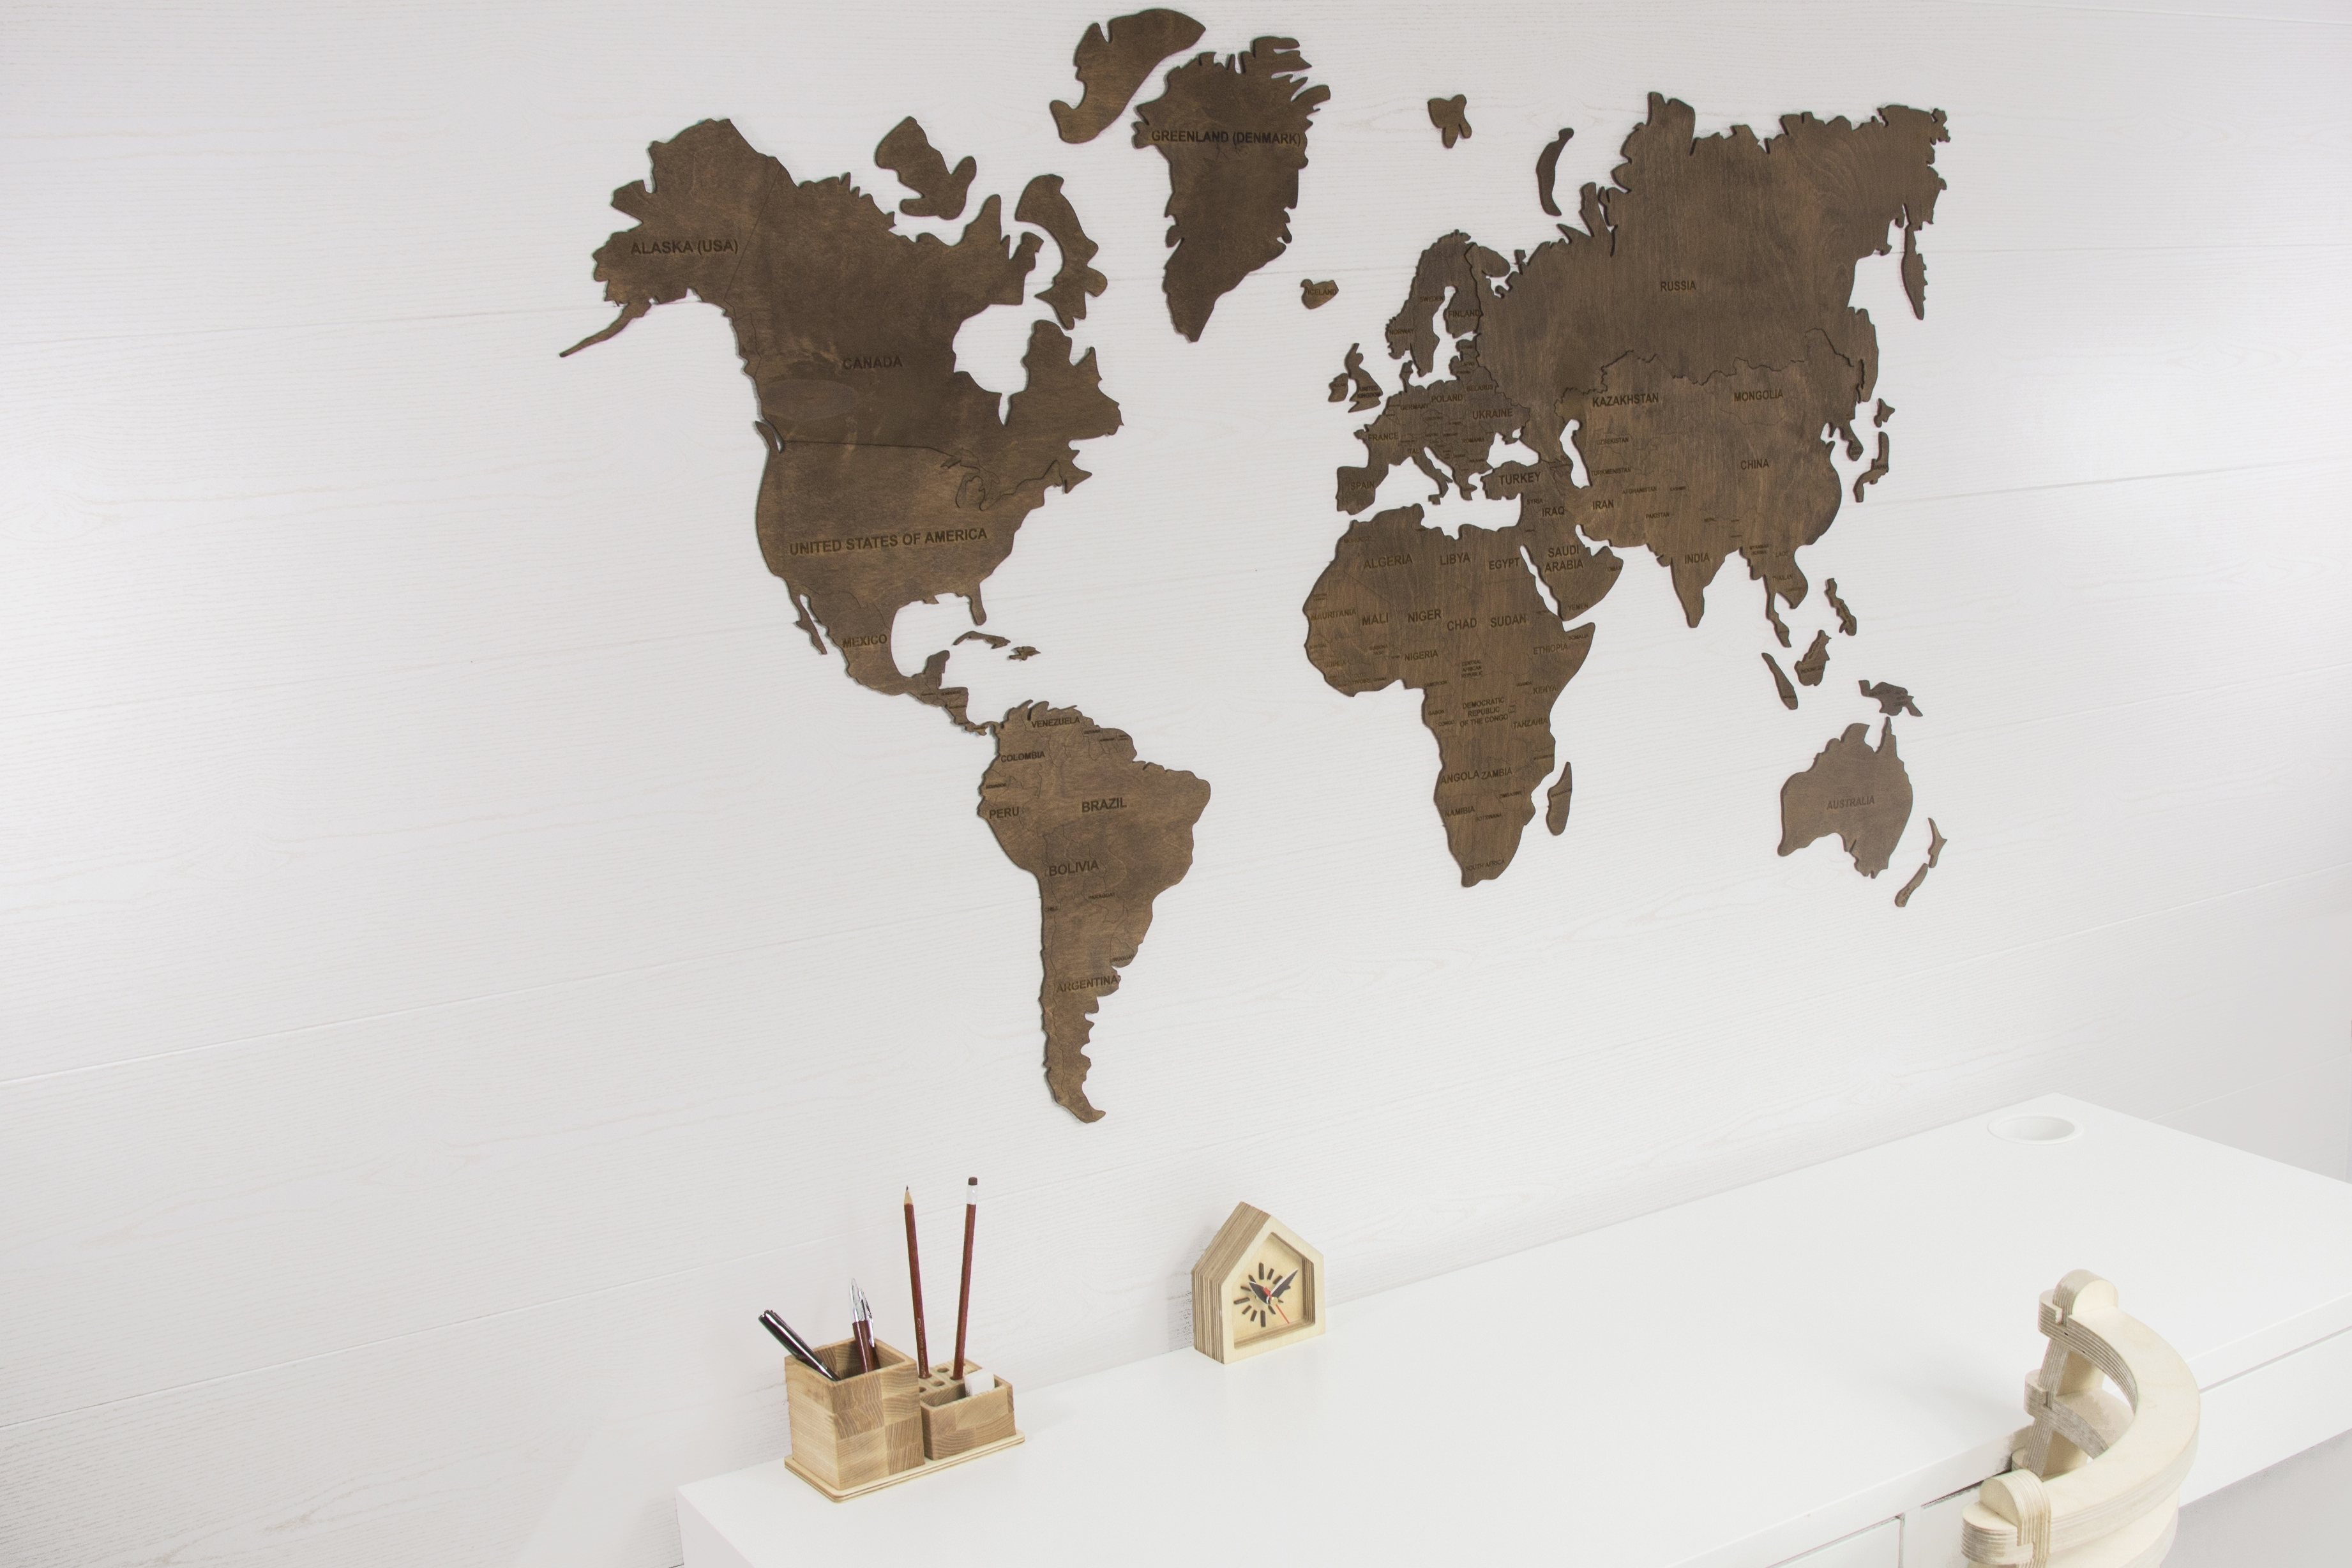 World Map Wall, World Map Hanging, World Map Wooden, World Map Wood inside Map Of The World Wall Art (Image 19 of 20)